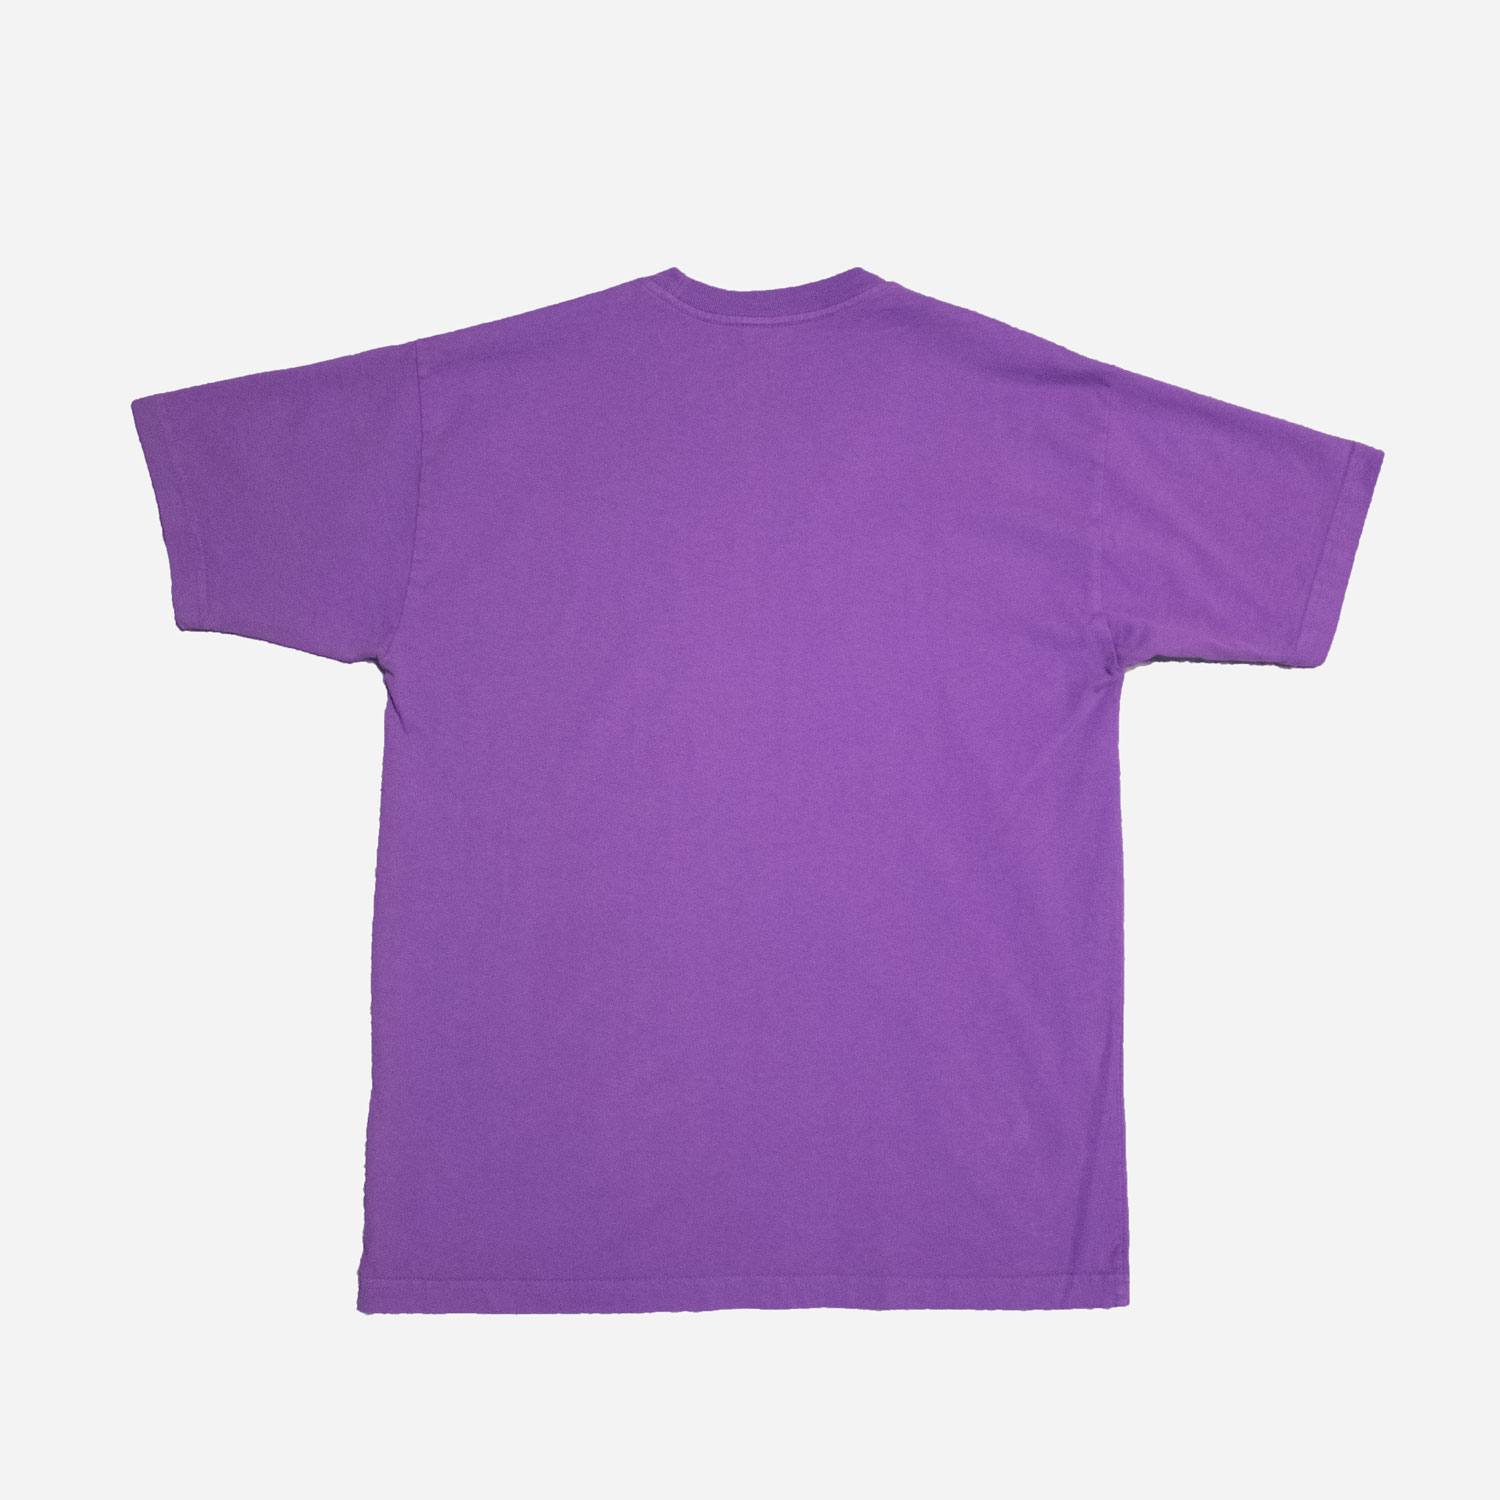 Obey Black Bar Tee - Orchid 1